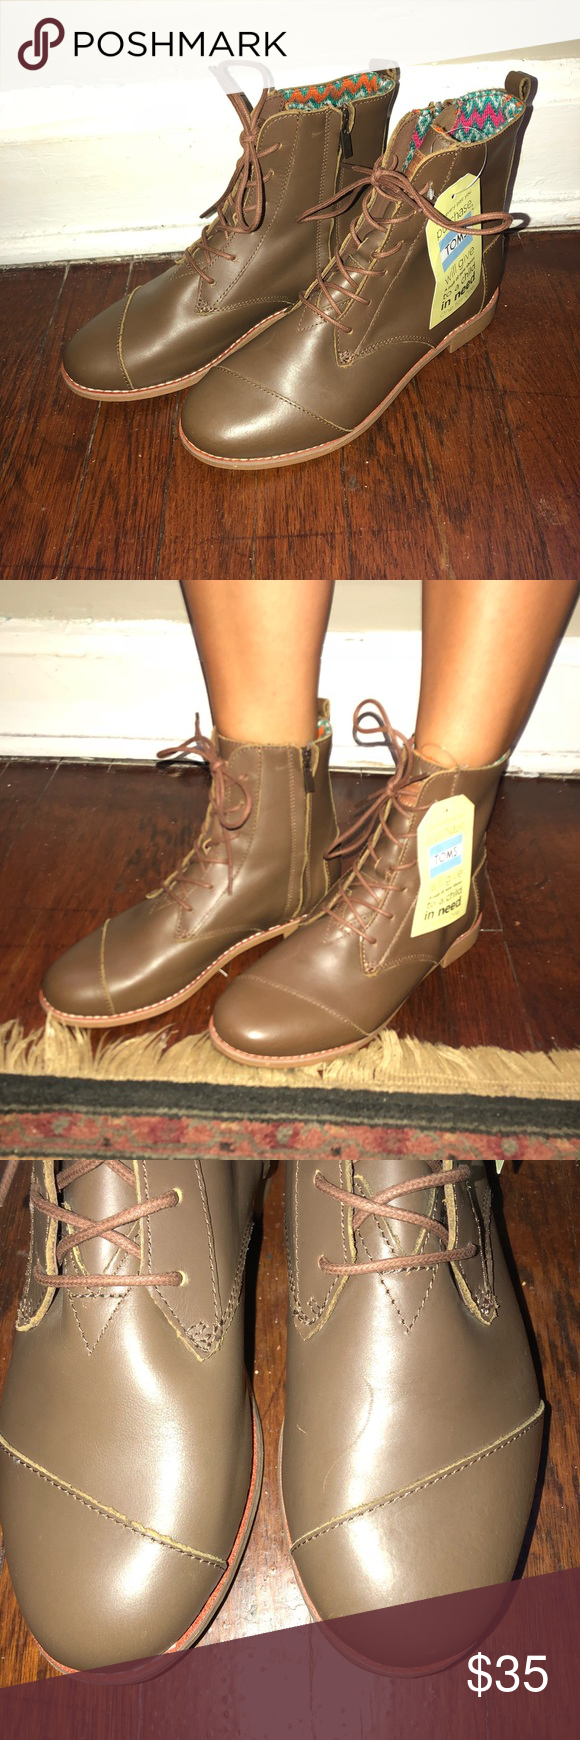 c668253273f Brand new brown toms lace-up combat boots Never worn! New with tags.